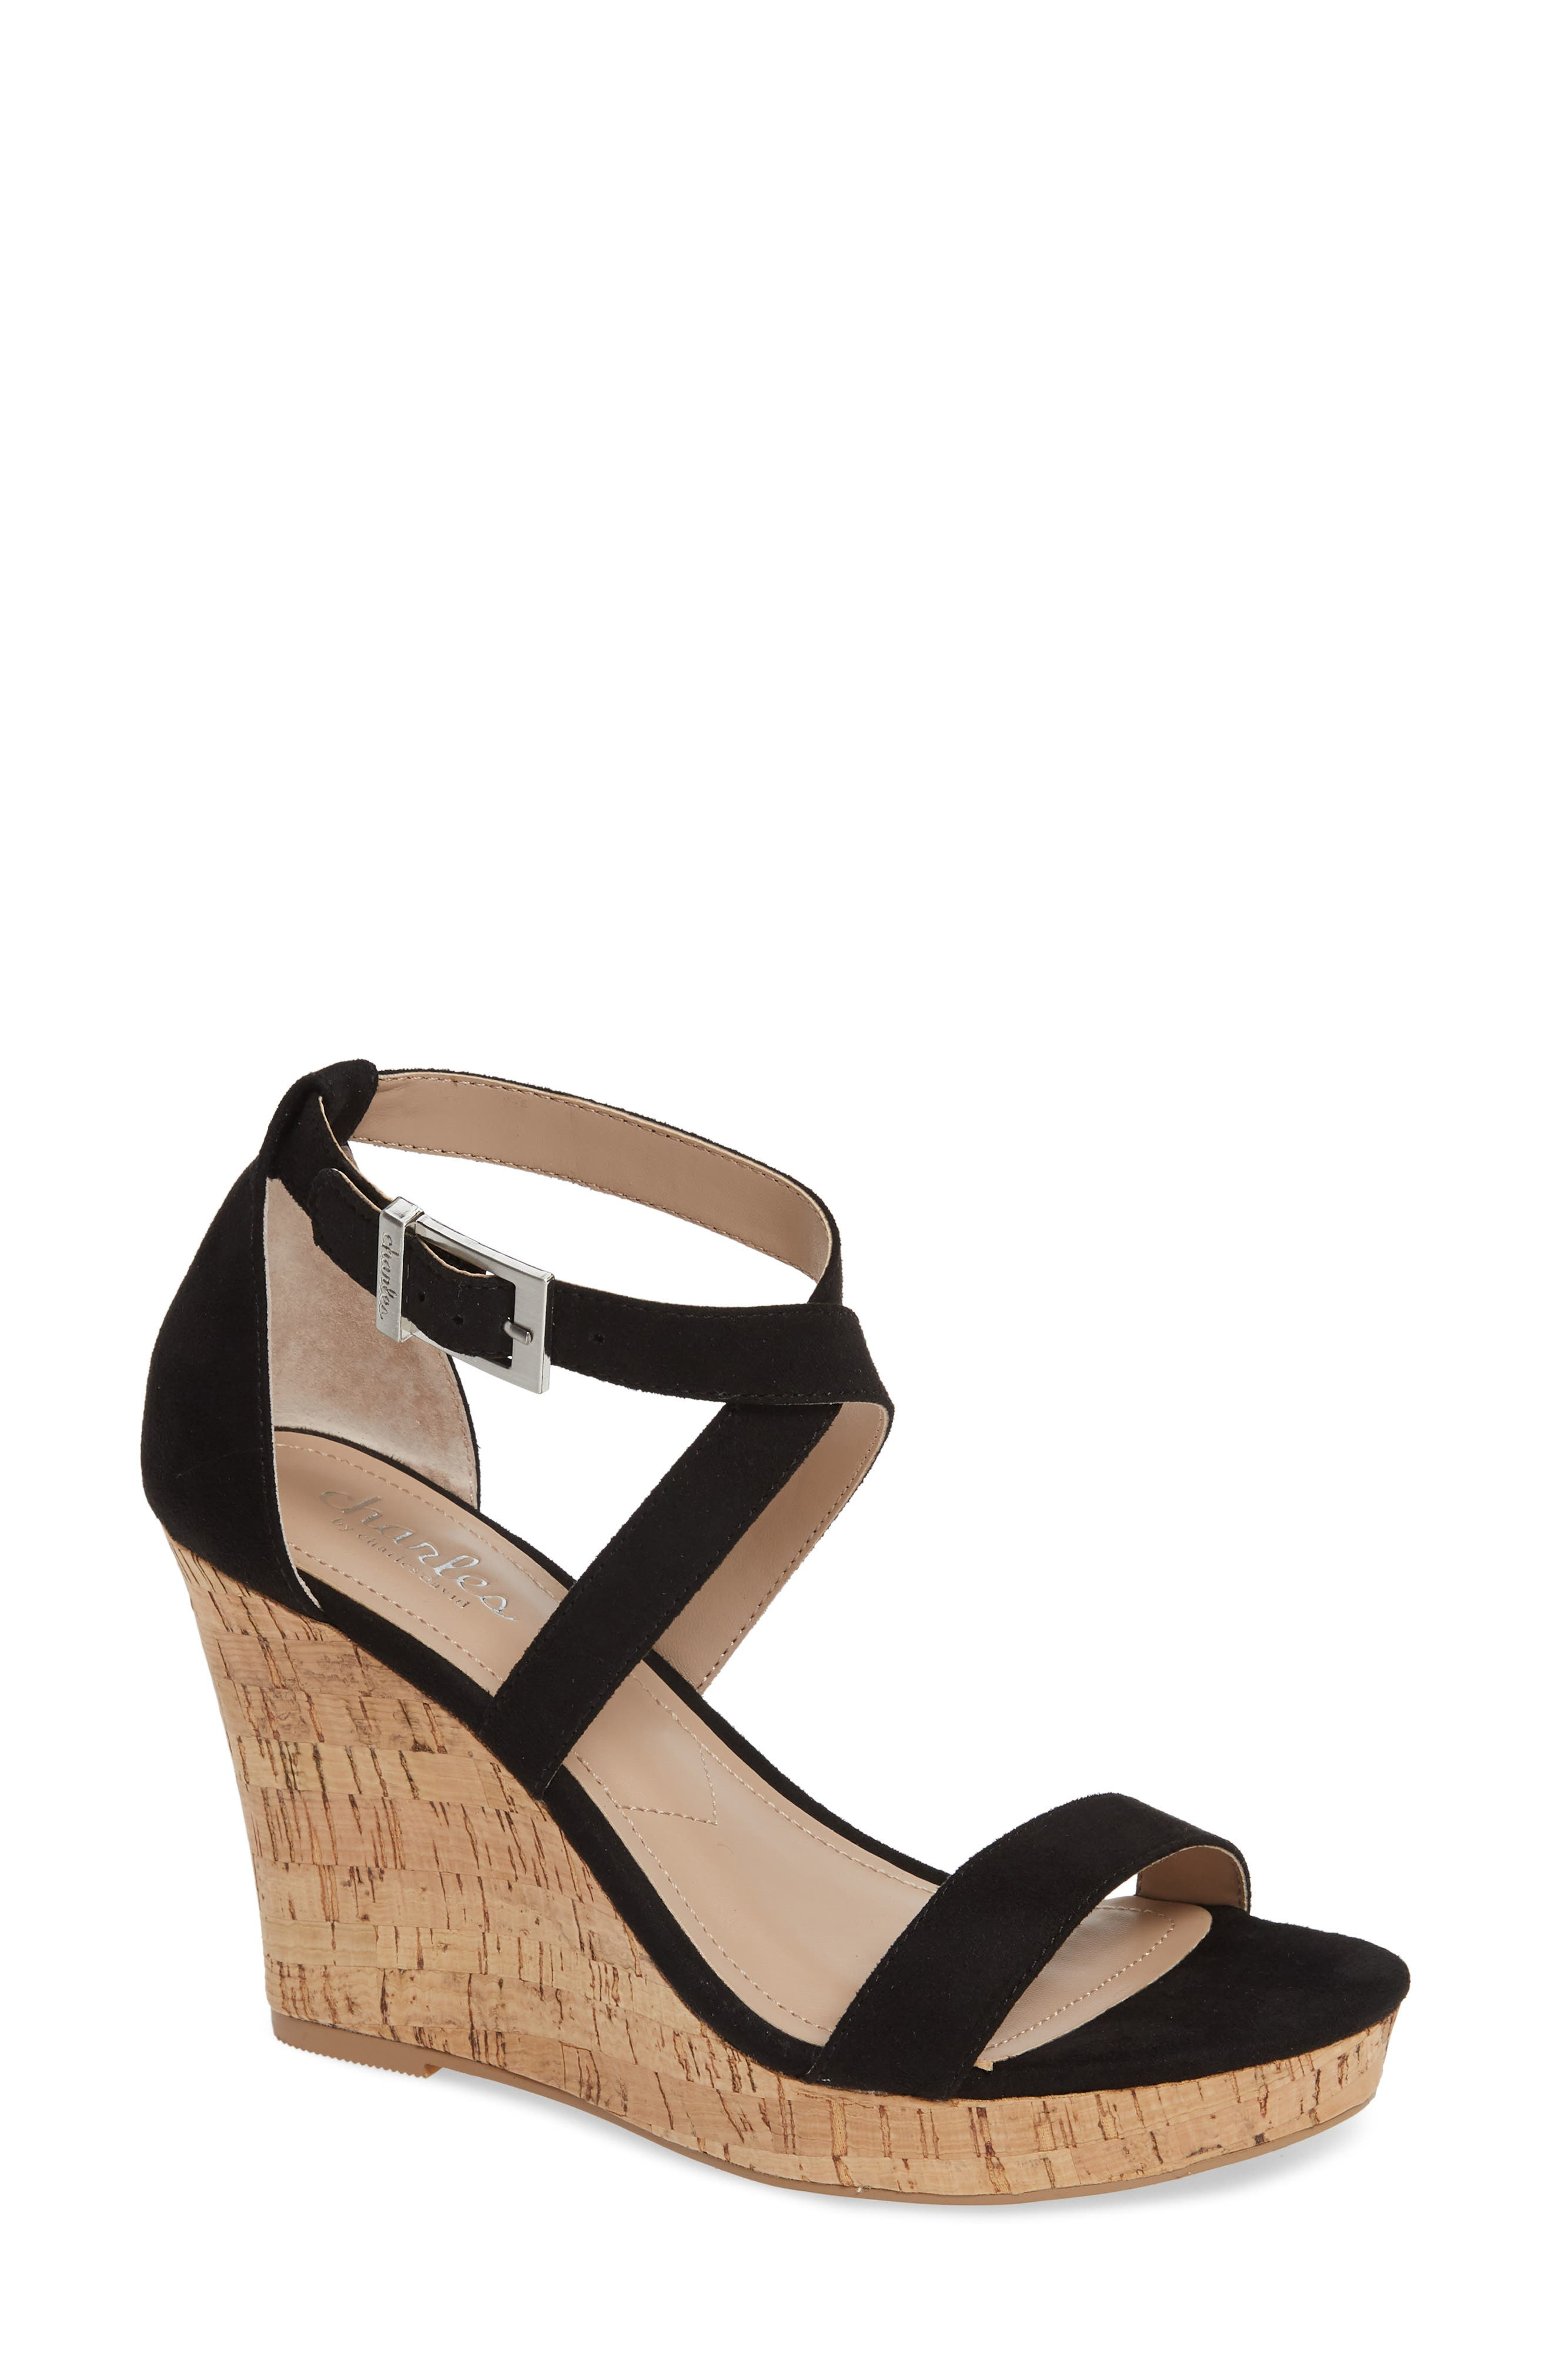 CHARLES BY CHARLES DAVID Launch Wedge Sandal, Main, color, BLACK FABRIC